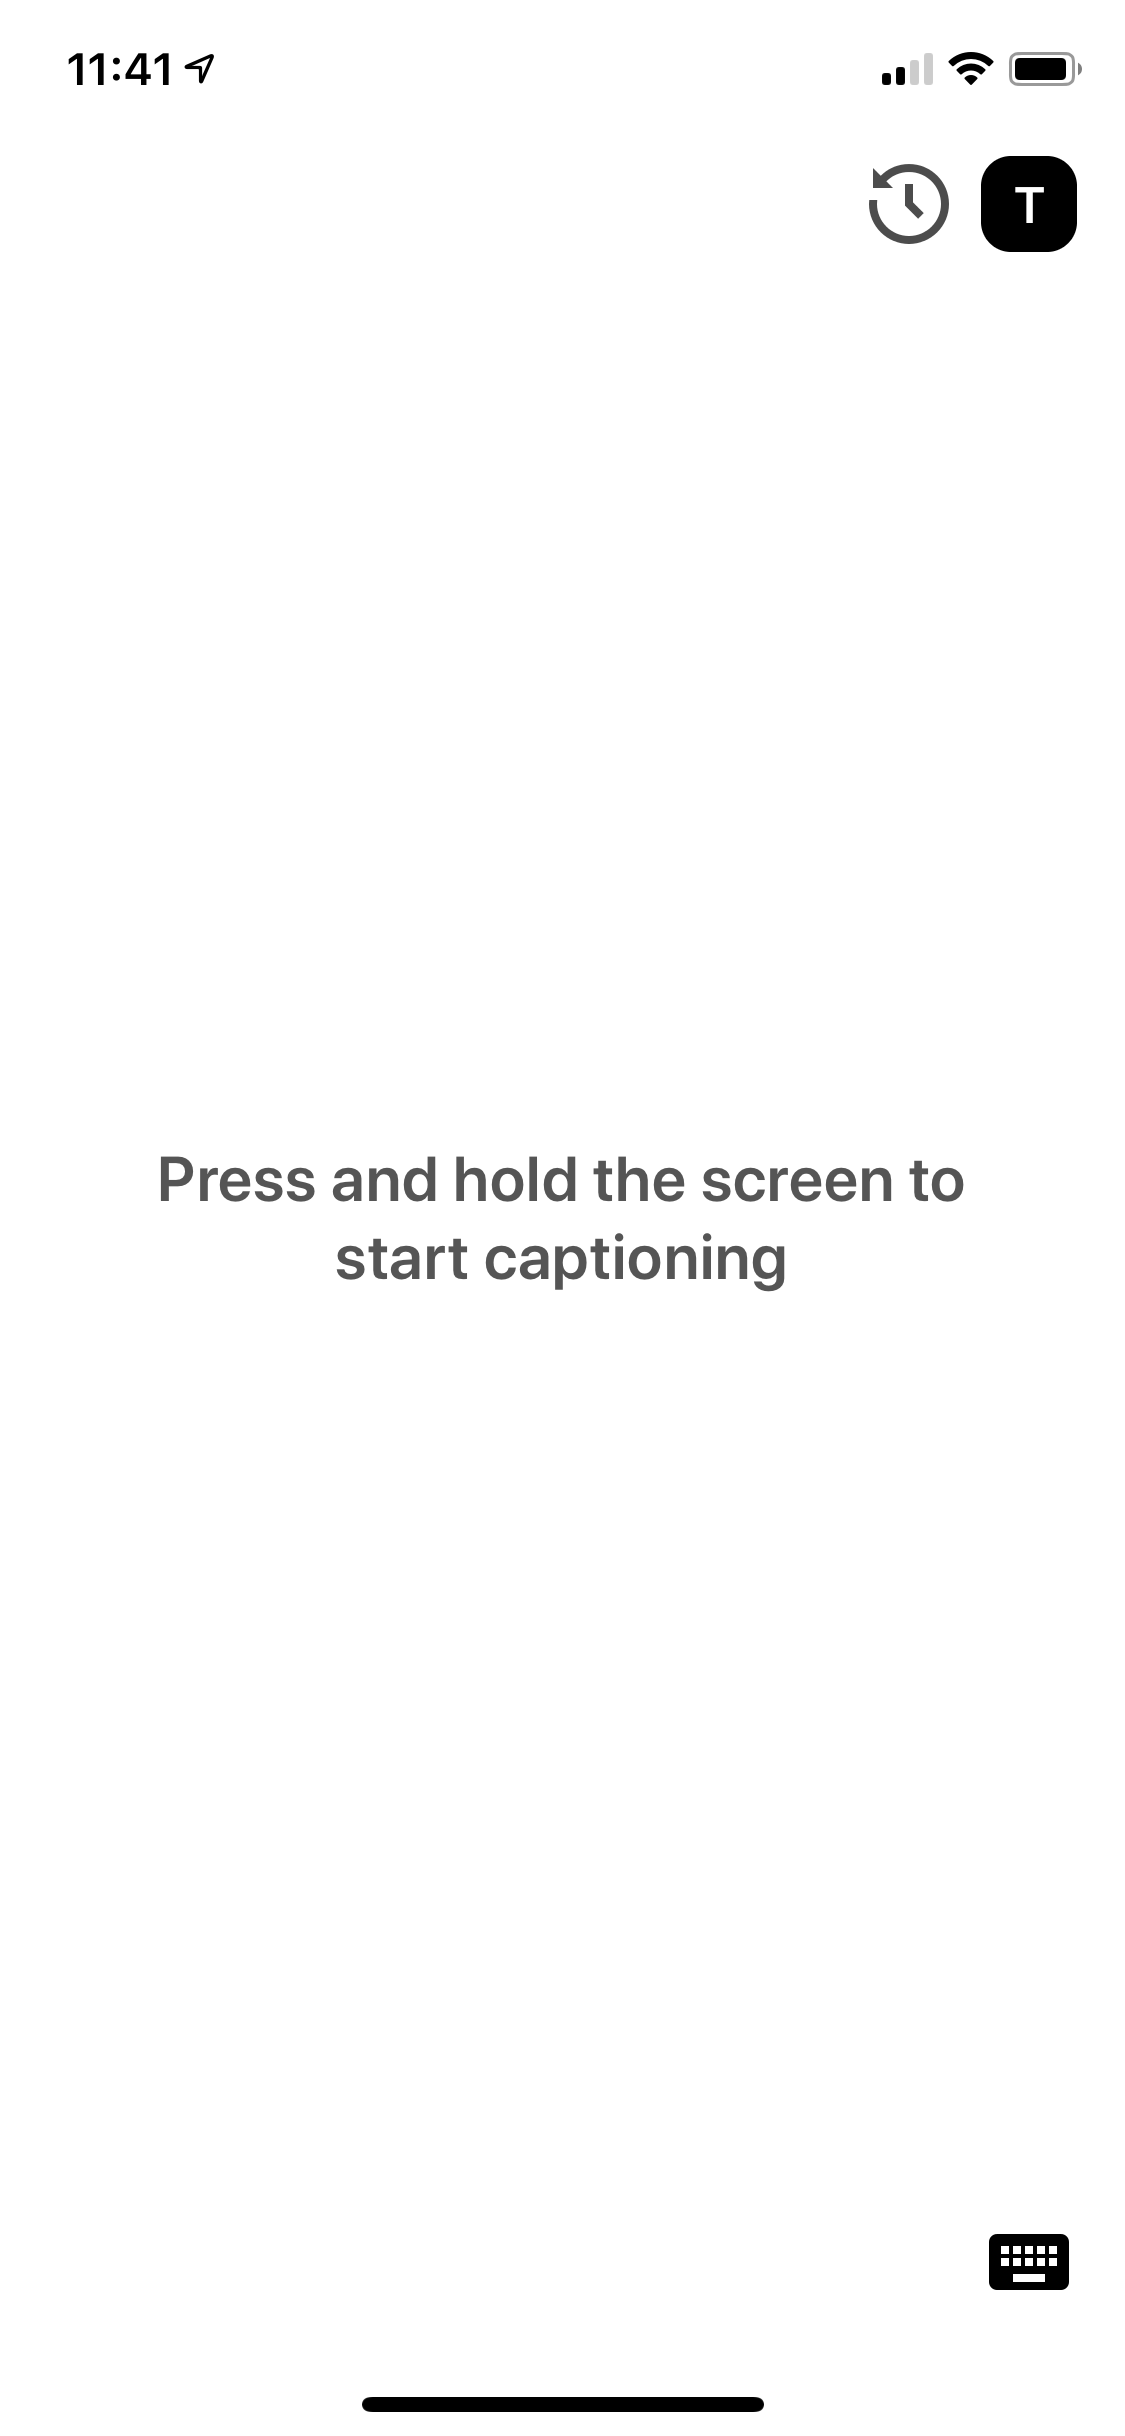 eyeHears captioning interface directly after launch, before anything has been captioned. Contains instructions to press and hold to start captioning.